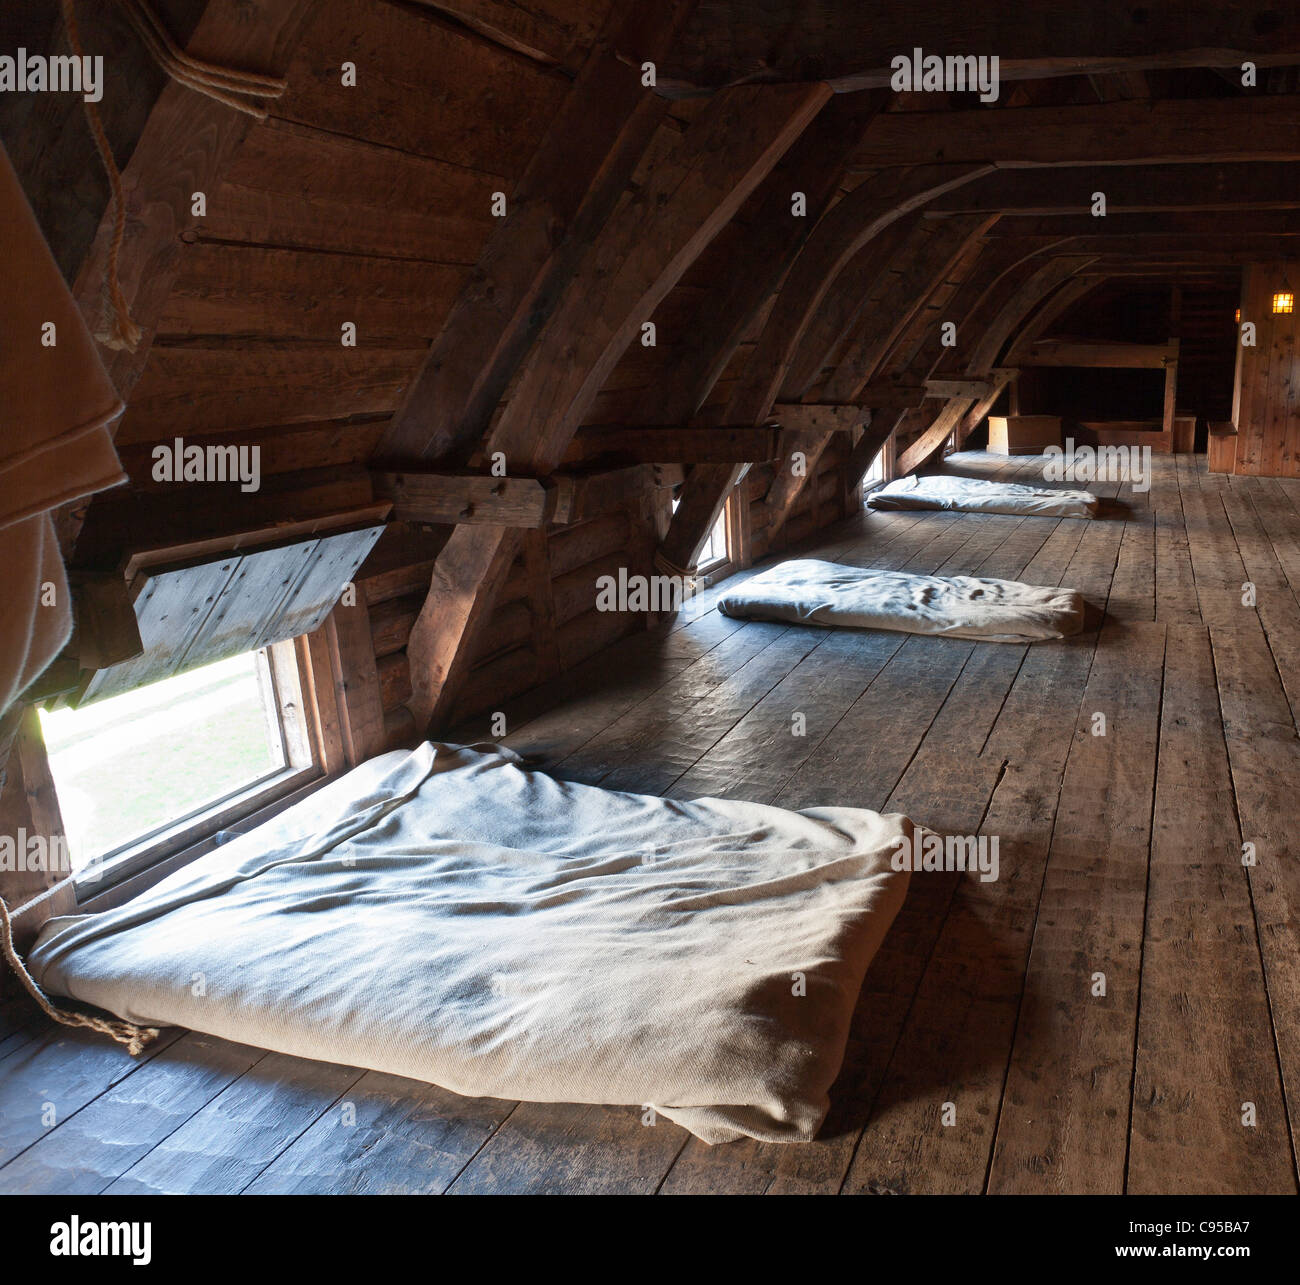 Loft Bedroom at the Port Royal Habitation. The reconstructed Port Royal Habitation built in the early 1600s - Stock Image